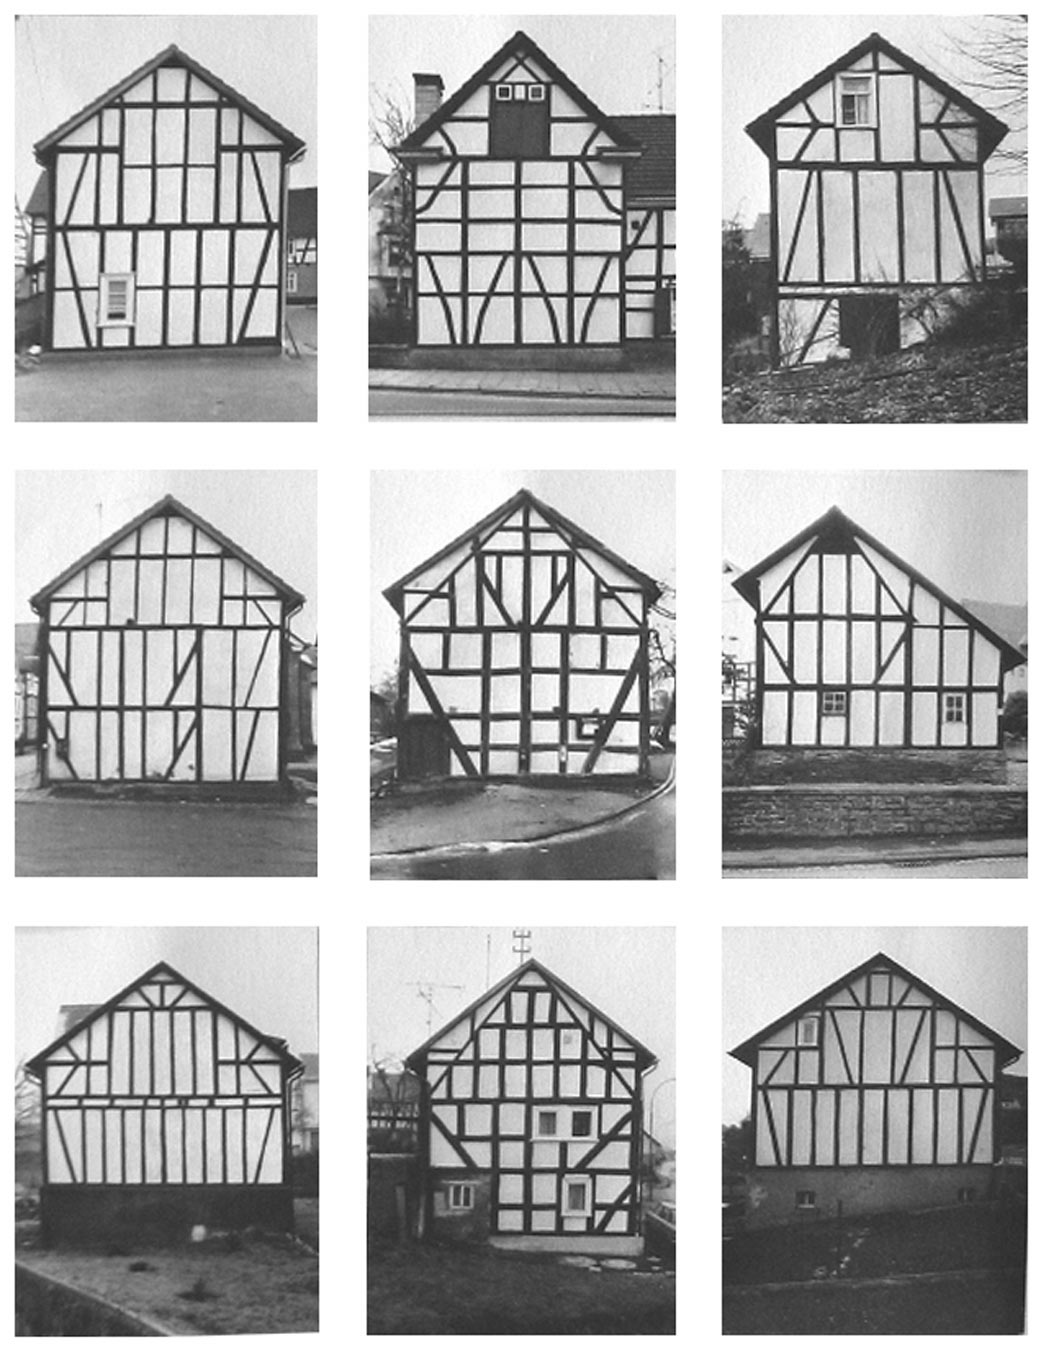 Bernd and Hilla Becher - Framework Houses, 2011 -  Sonnabend Gallery